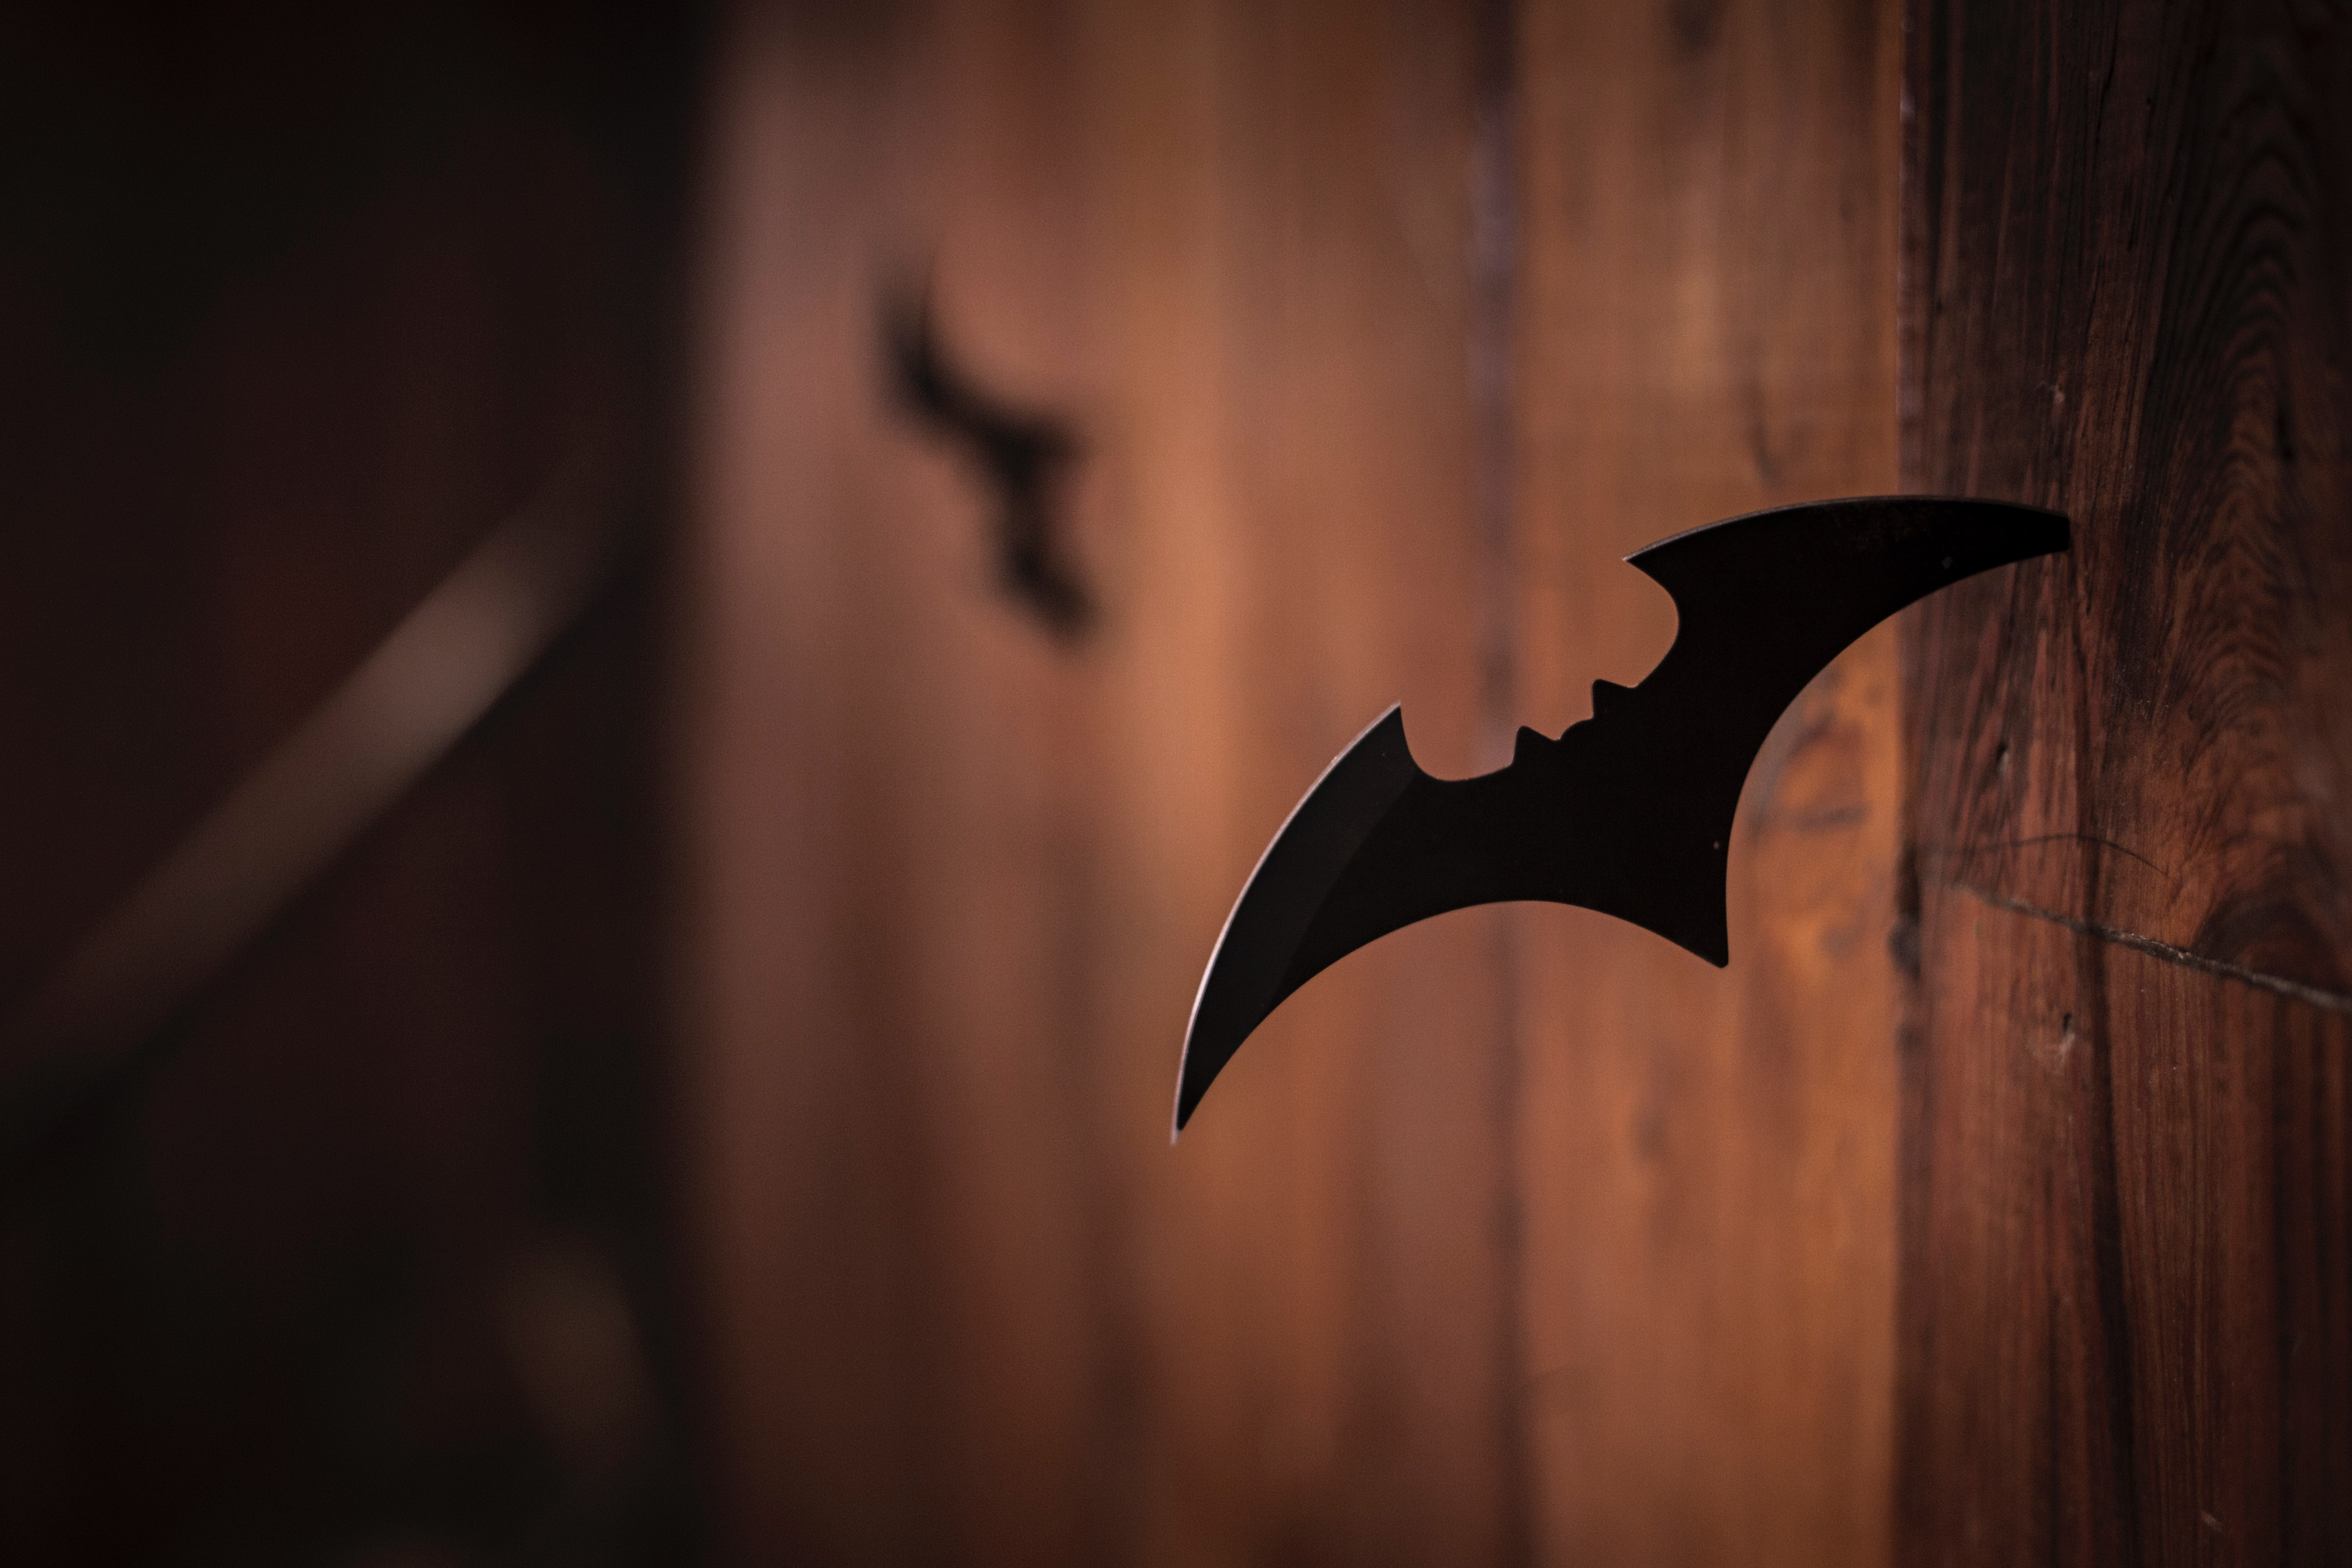 Throwing knife in the shape of a knife. Photo courtesy of AActionVance on Unsplash.